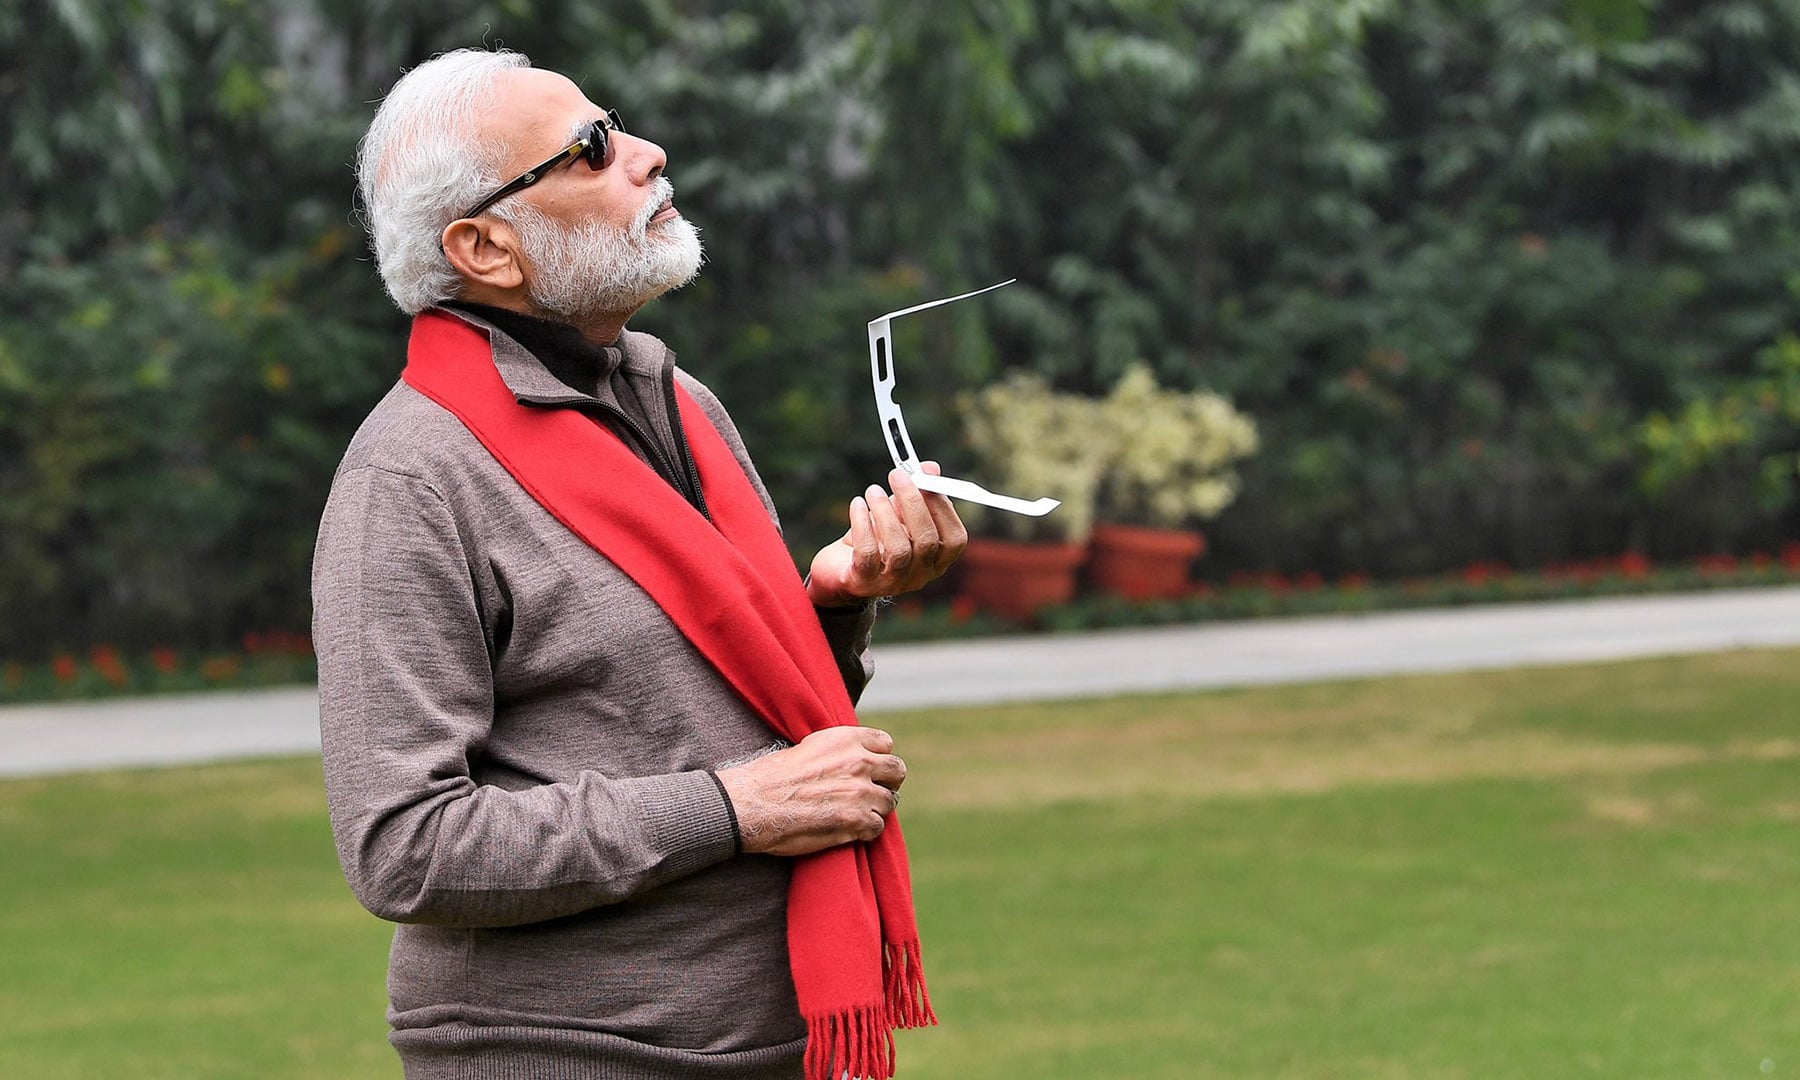 Indian Prime Minister Narendra Modi said he was unable to see the Sun due to cloud cover but did catch a glimpse of the eclipse in Kozhikode and other parts on the livestream. In a tweet, he added that he had enriched his knowledge on the subject by interacting with experts. — PM Modi Twitter